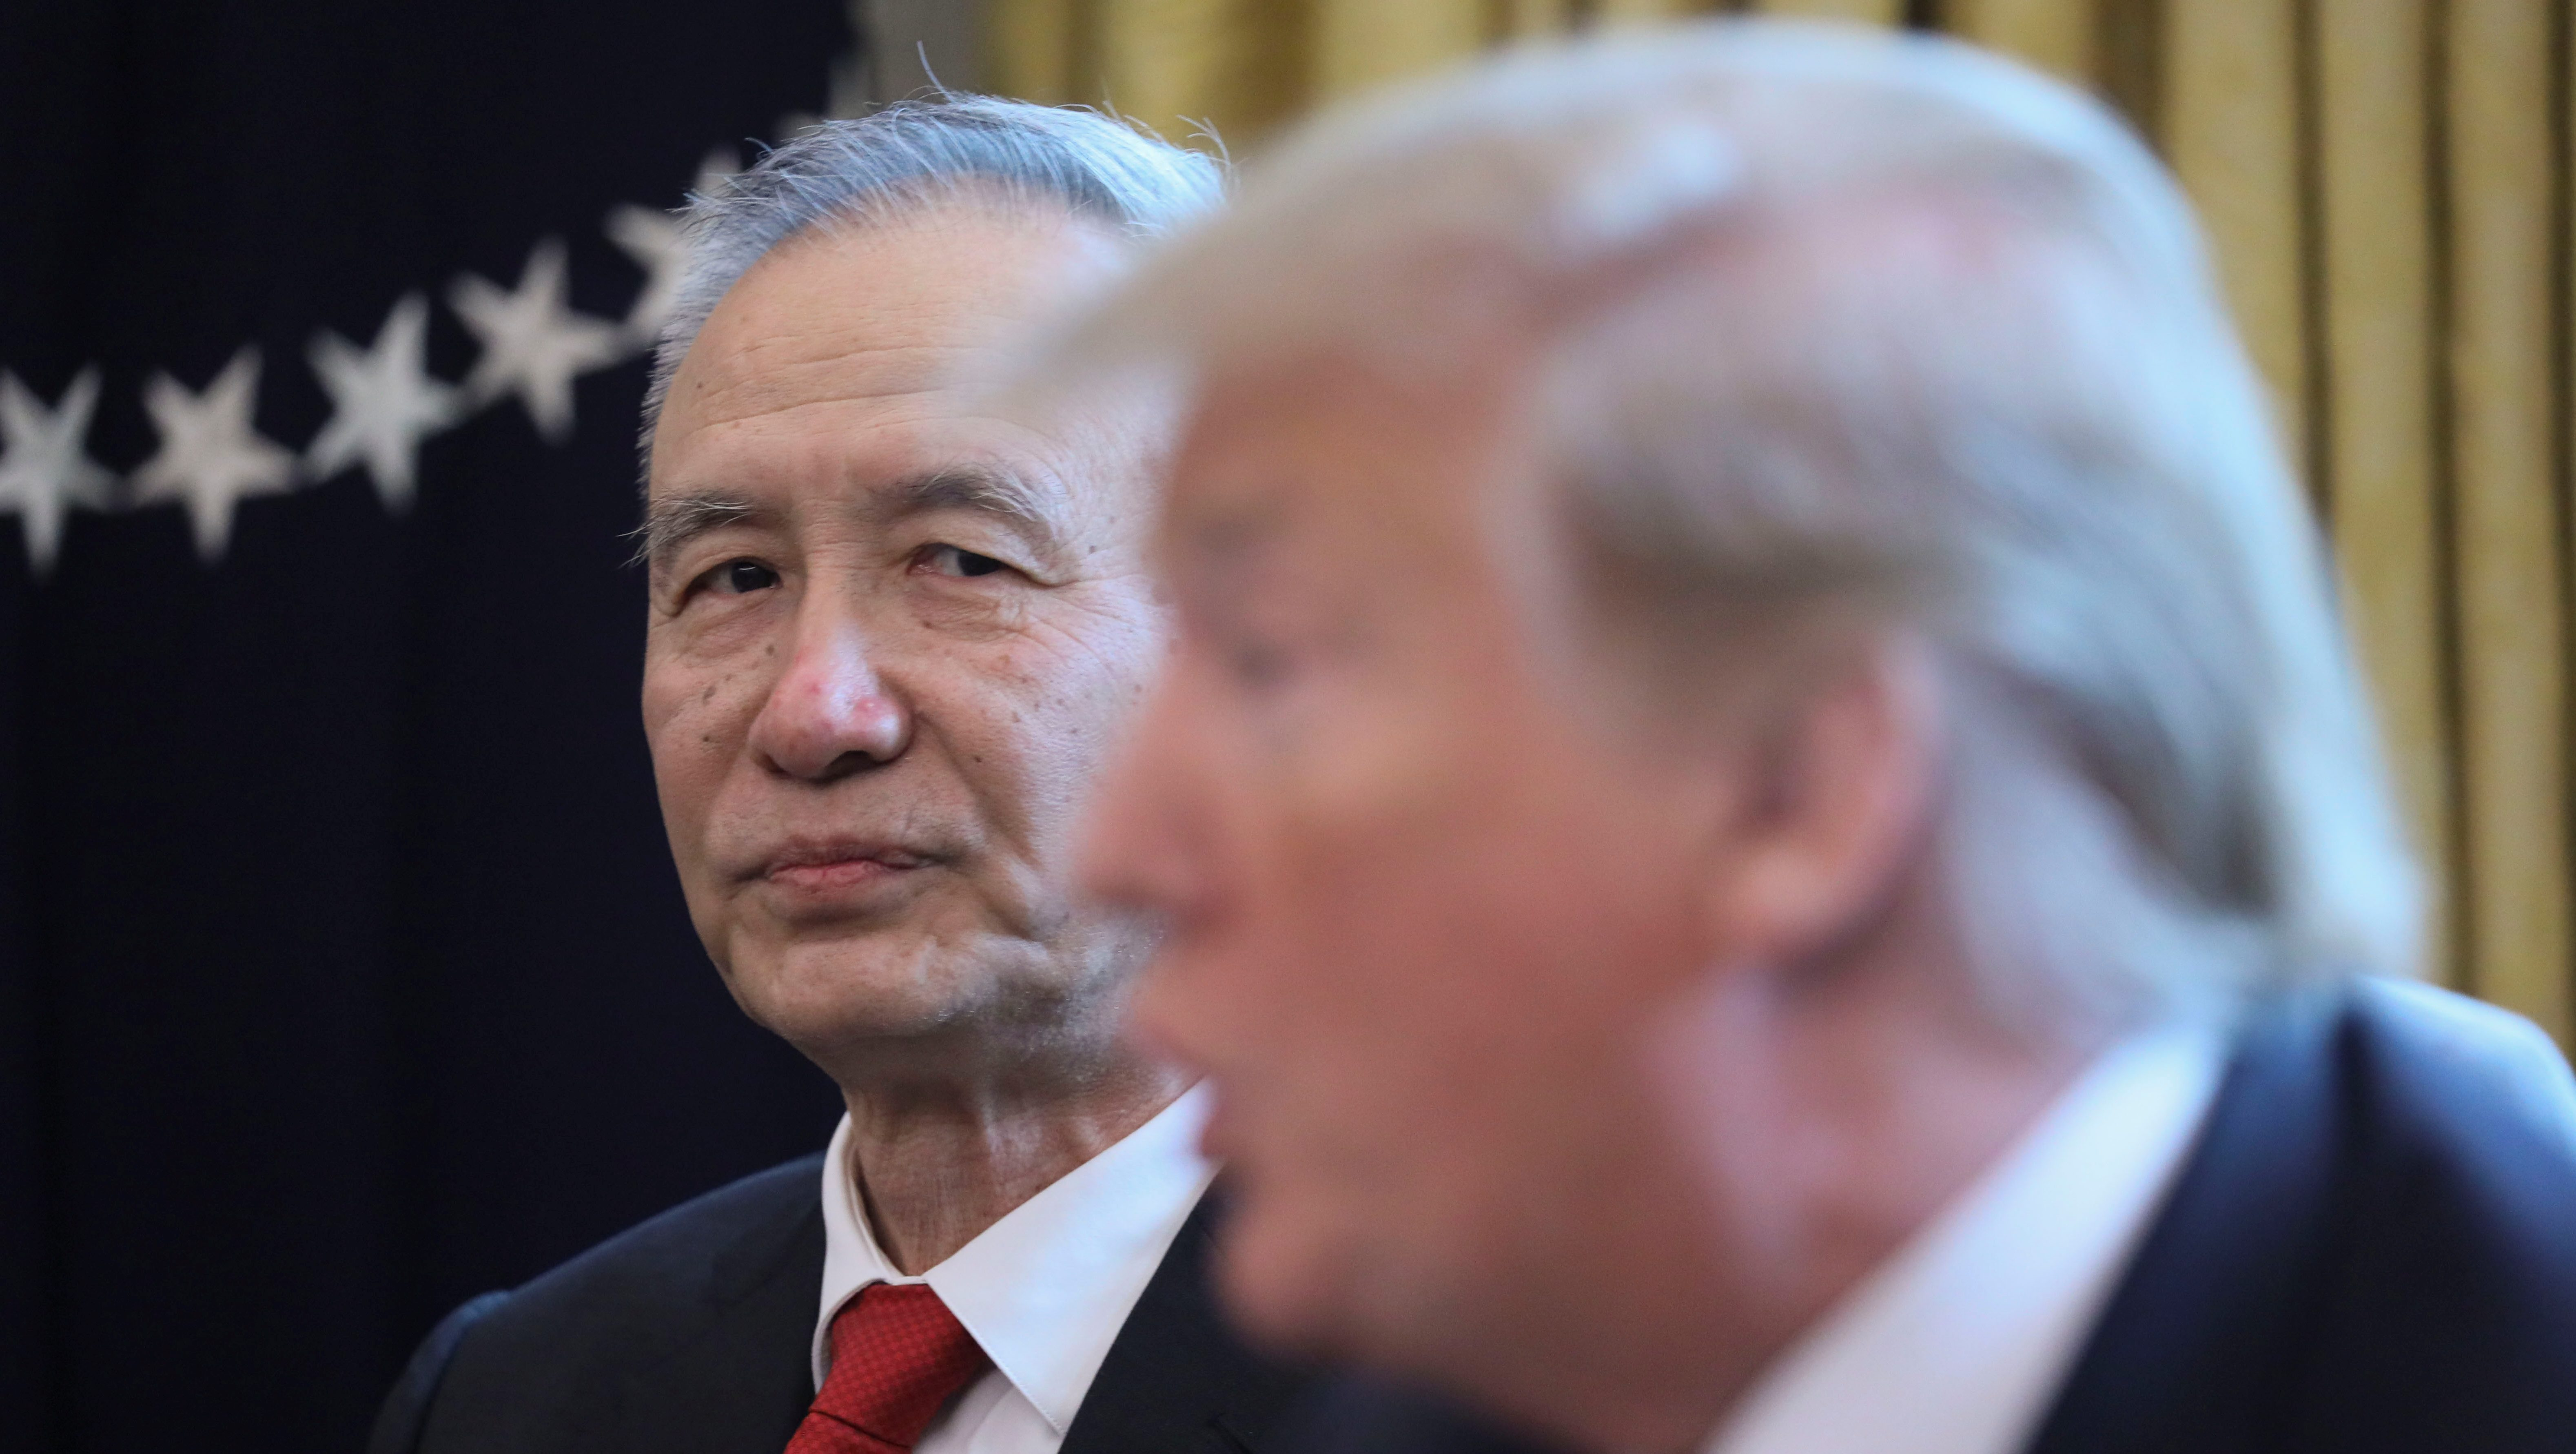 China's Vice Premier Liu He listens to U.S. President Trump as they meet in the Oval Office at the White House in Washington, U.S., April 4, 2019.